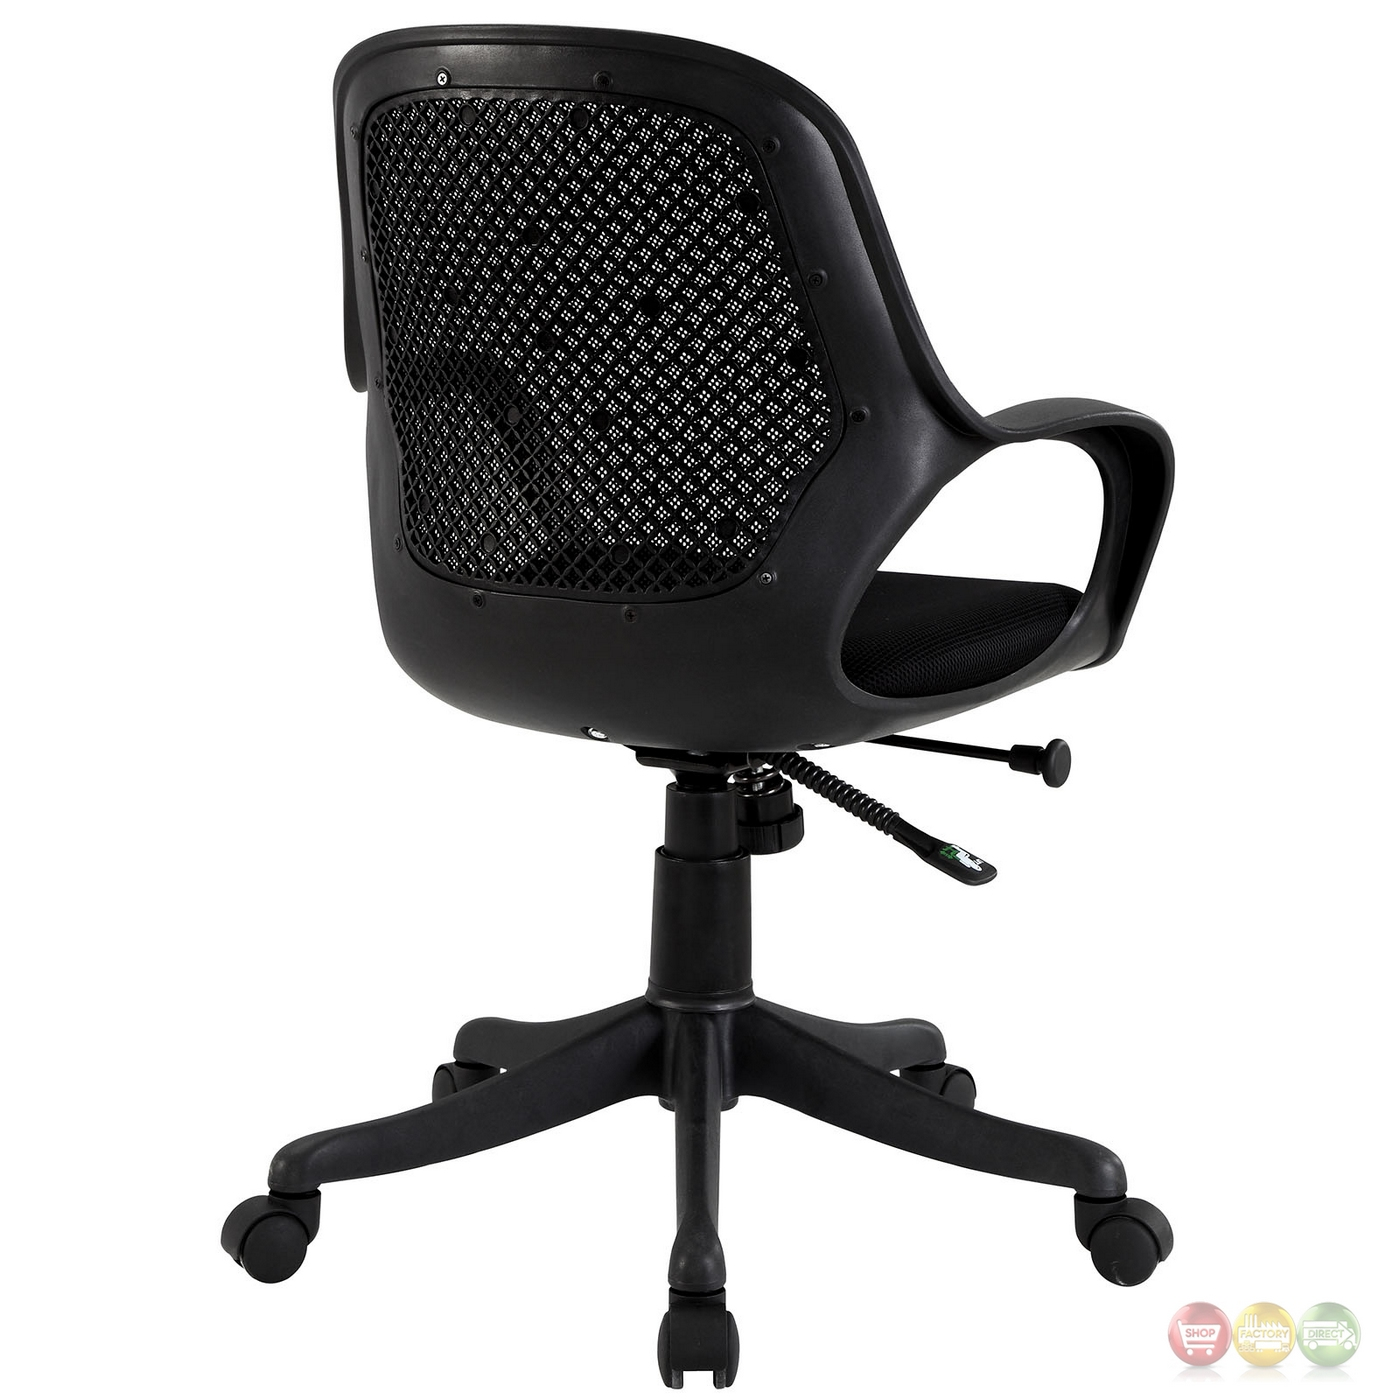 Ergonomic Mesh Office Chair Panorama Modern Ergonomic Adjustable Office Chair With